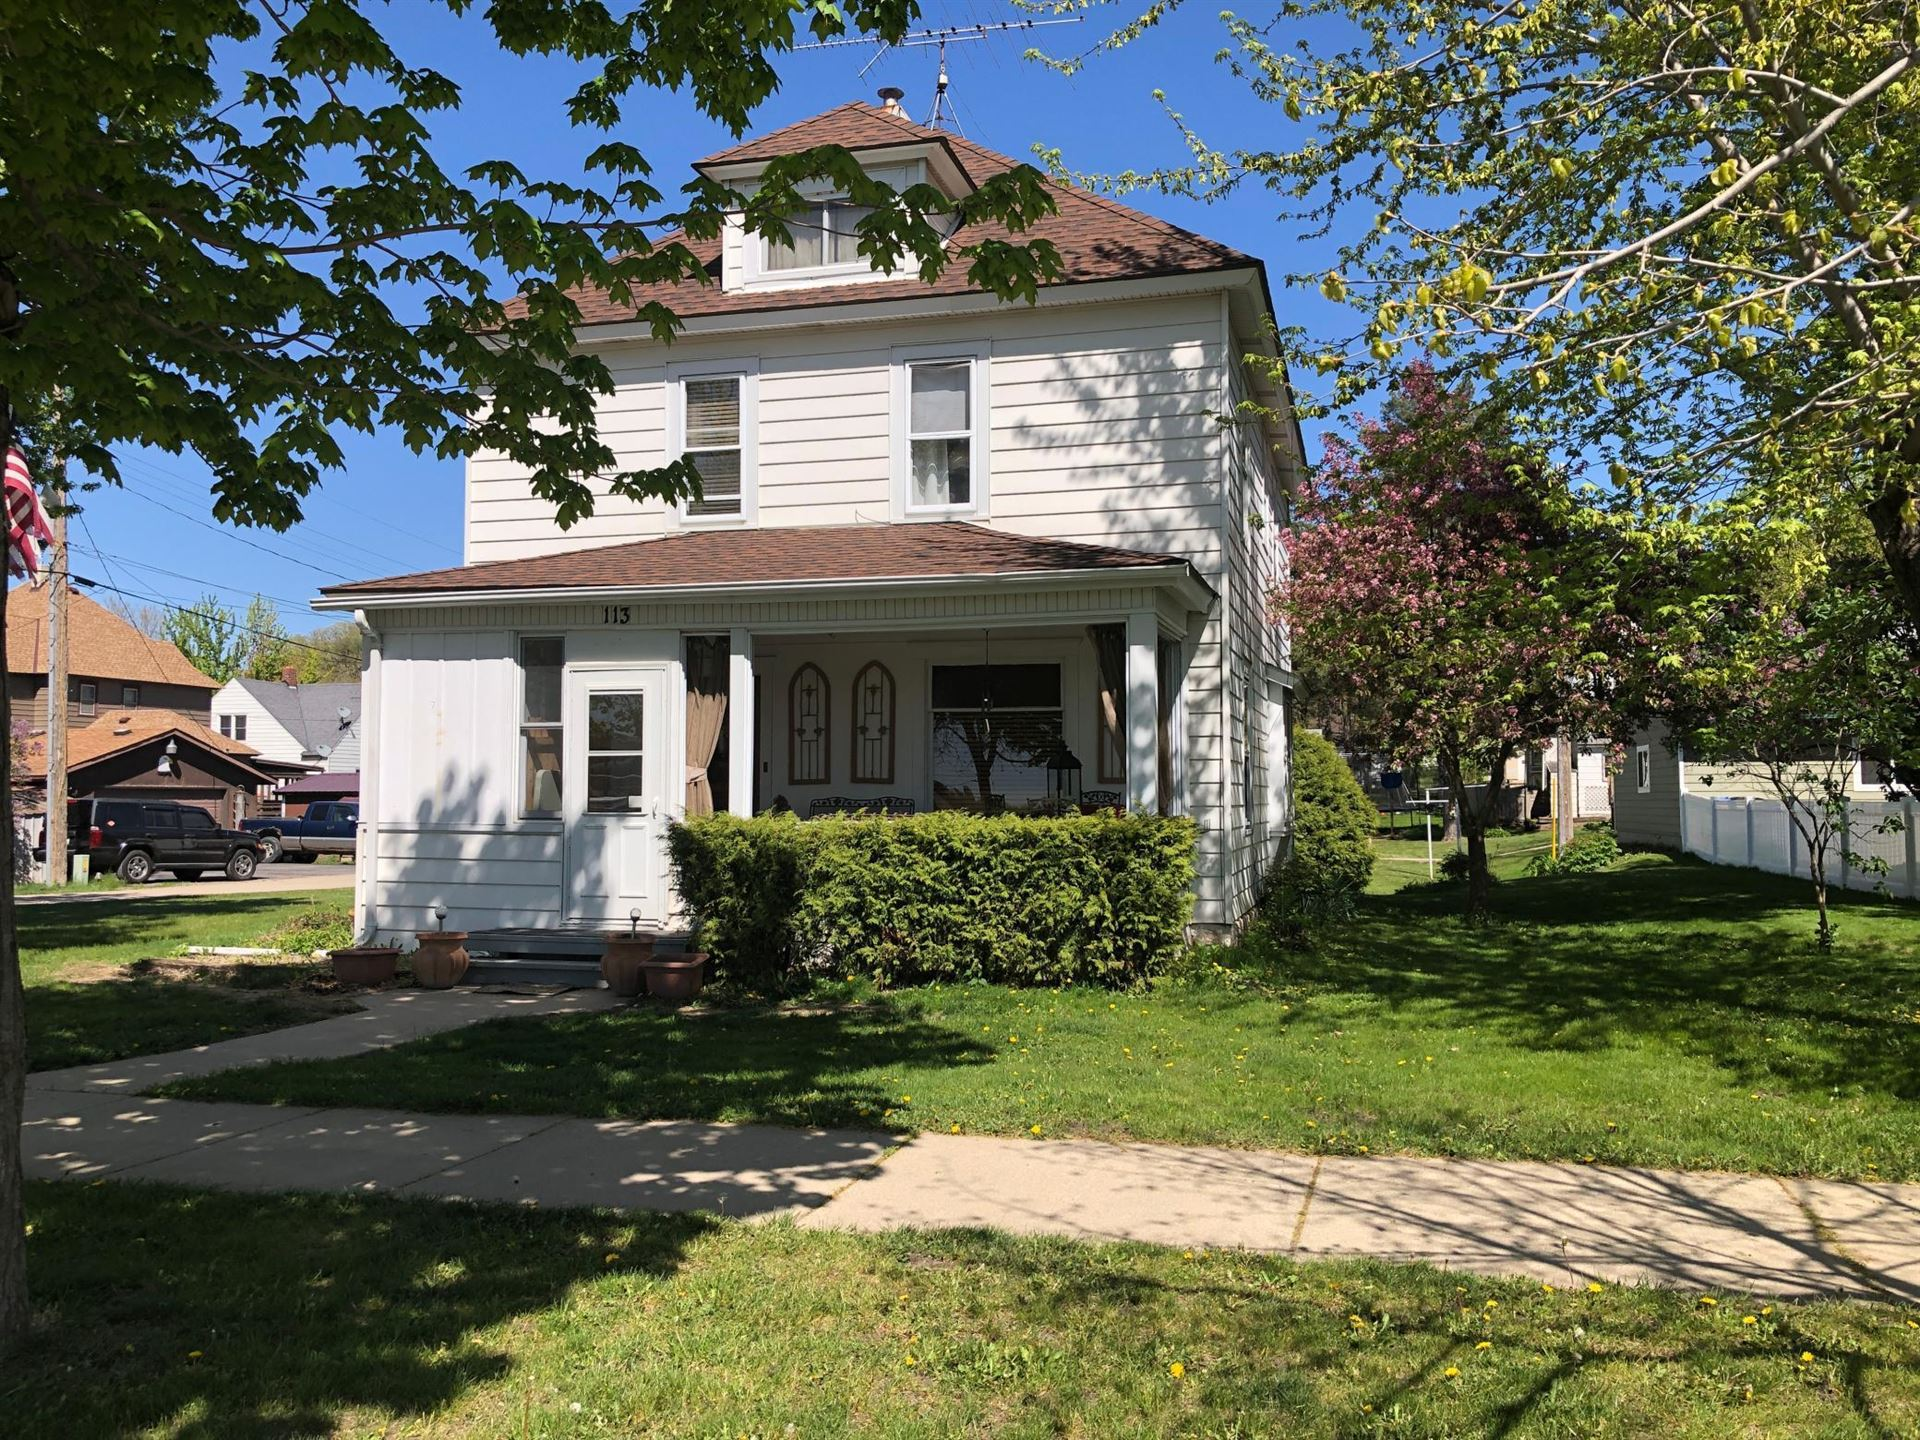 113 3rd Street S, Cannon Falls, MN 55009 - #: 5755933